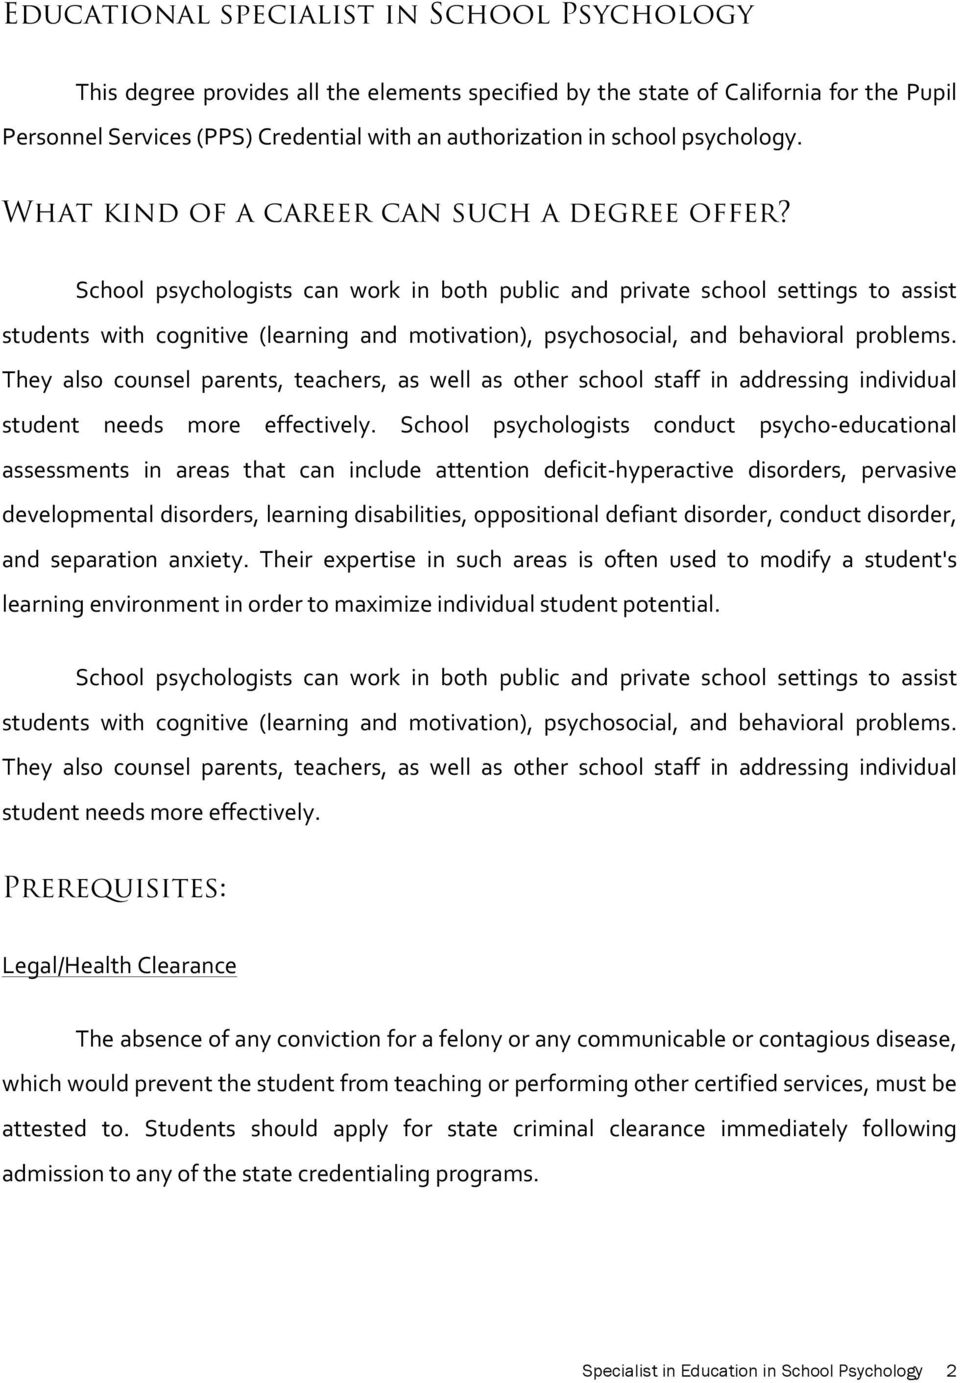 School psychologists can work in both public and private school settings to assist students with cognitive (learning and motivation), psychosocial, and behavioral problems.